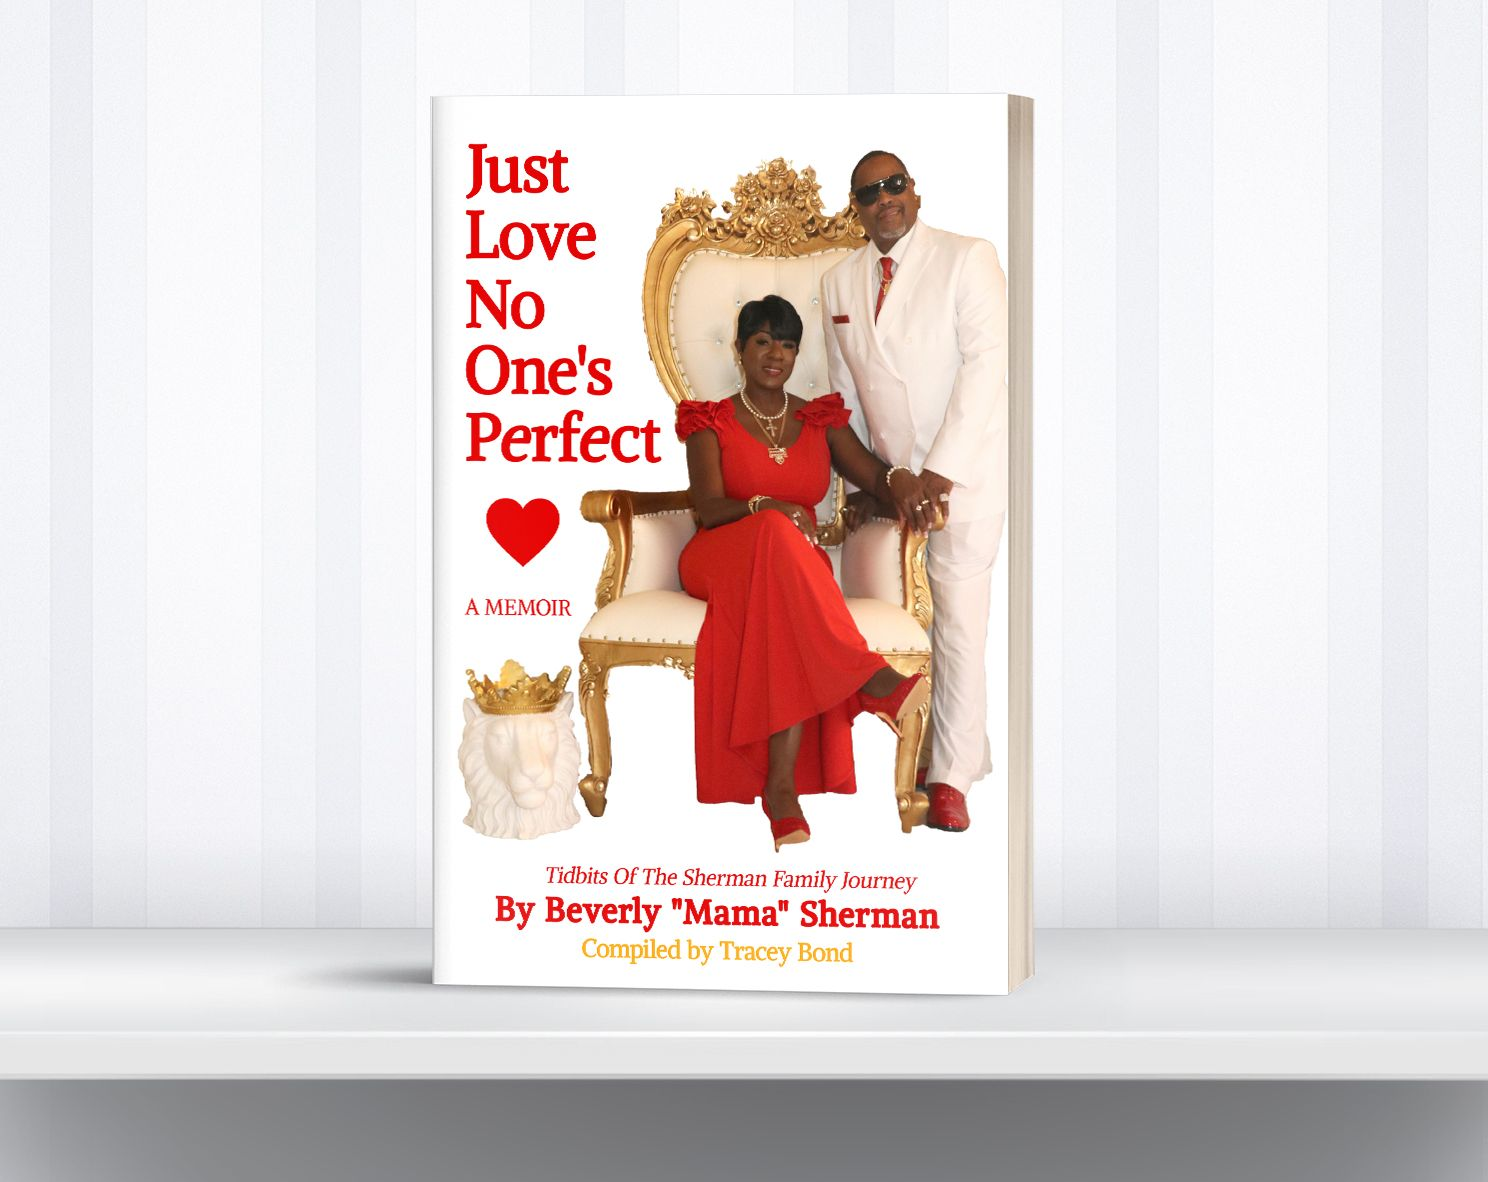 Mama Sherman's Book Just Love No Ones Perfect